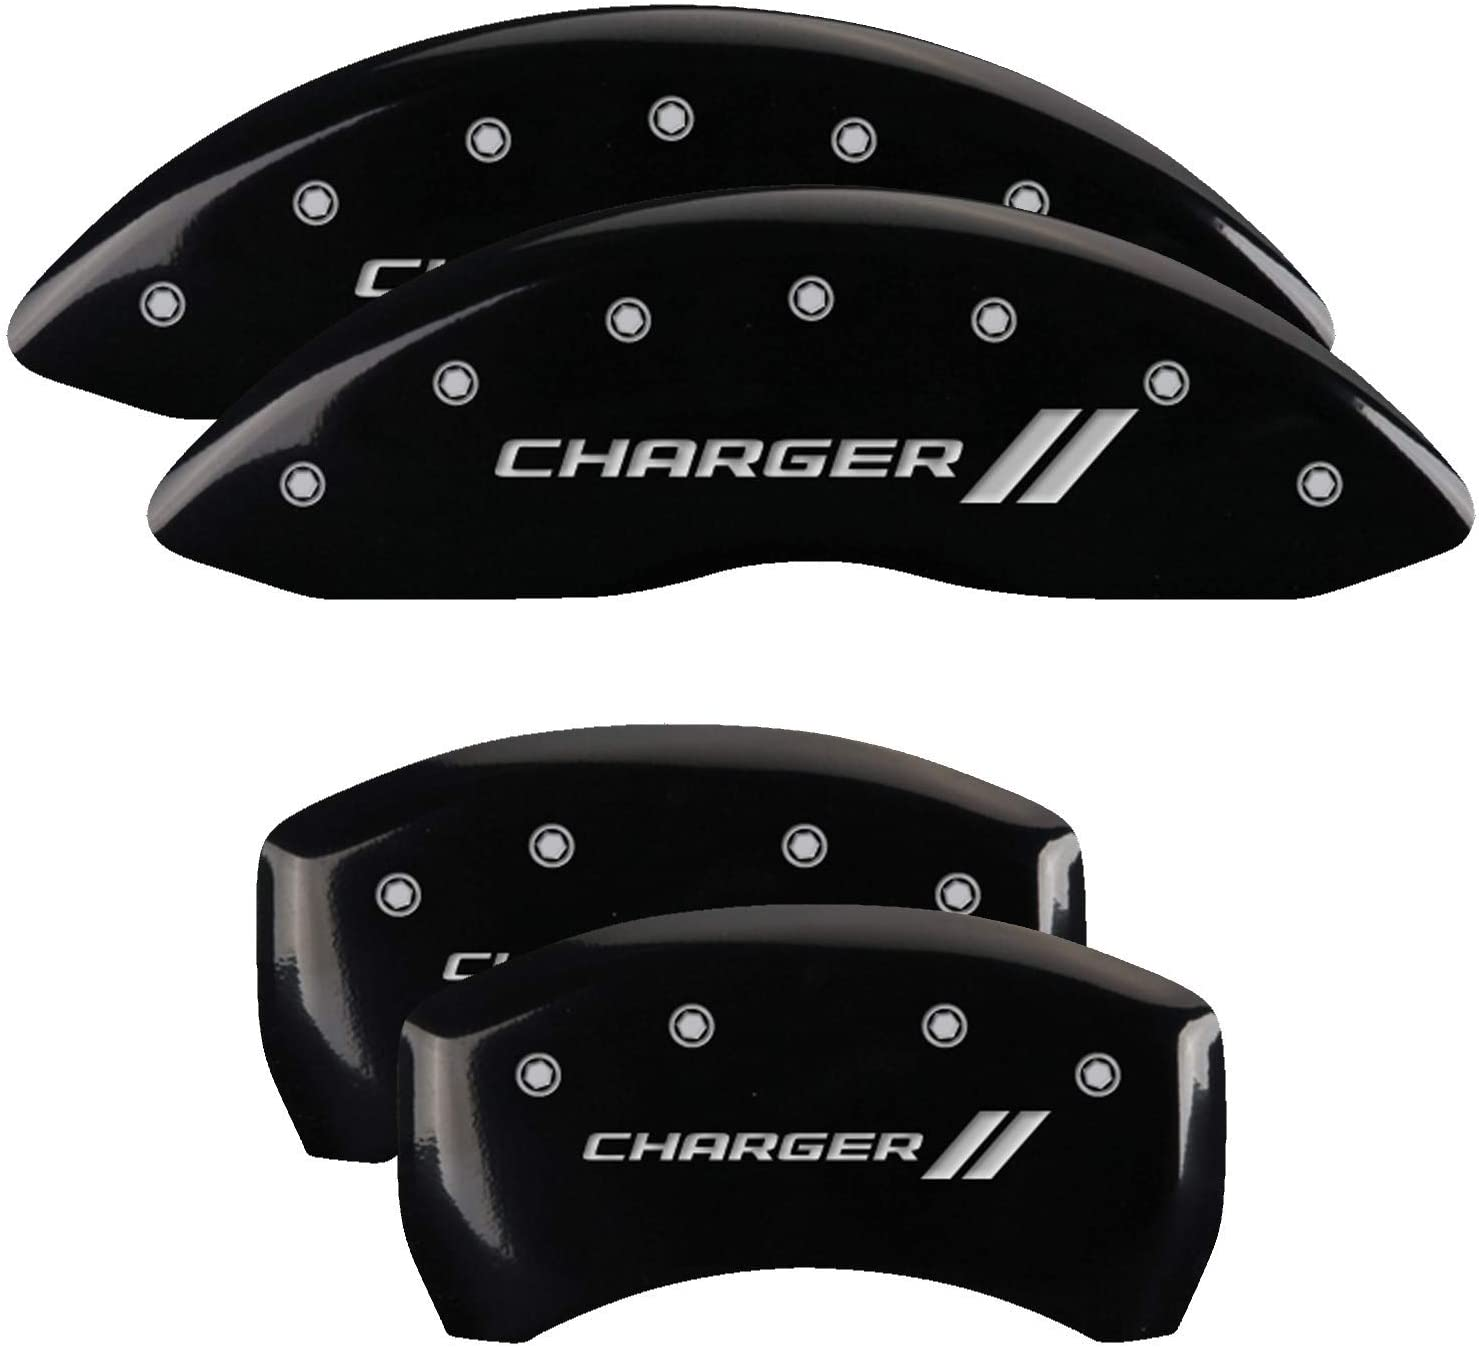 MGP Caliper Covers 12162SCH1BK Charger ll Engraved Caliper Cover with Black Powder Coat Finish and Silver Characters, Set of 4